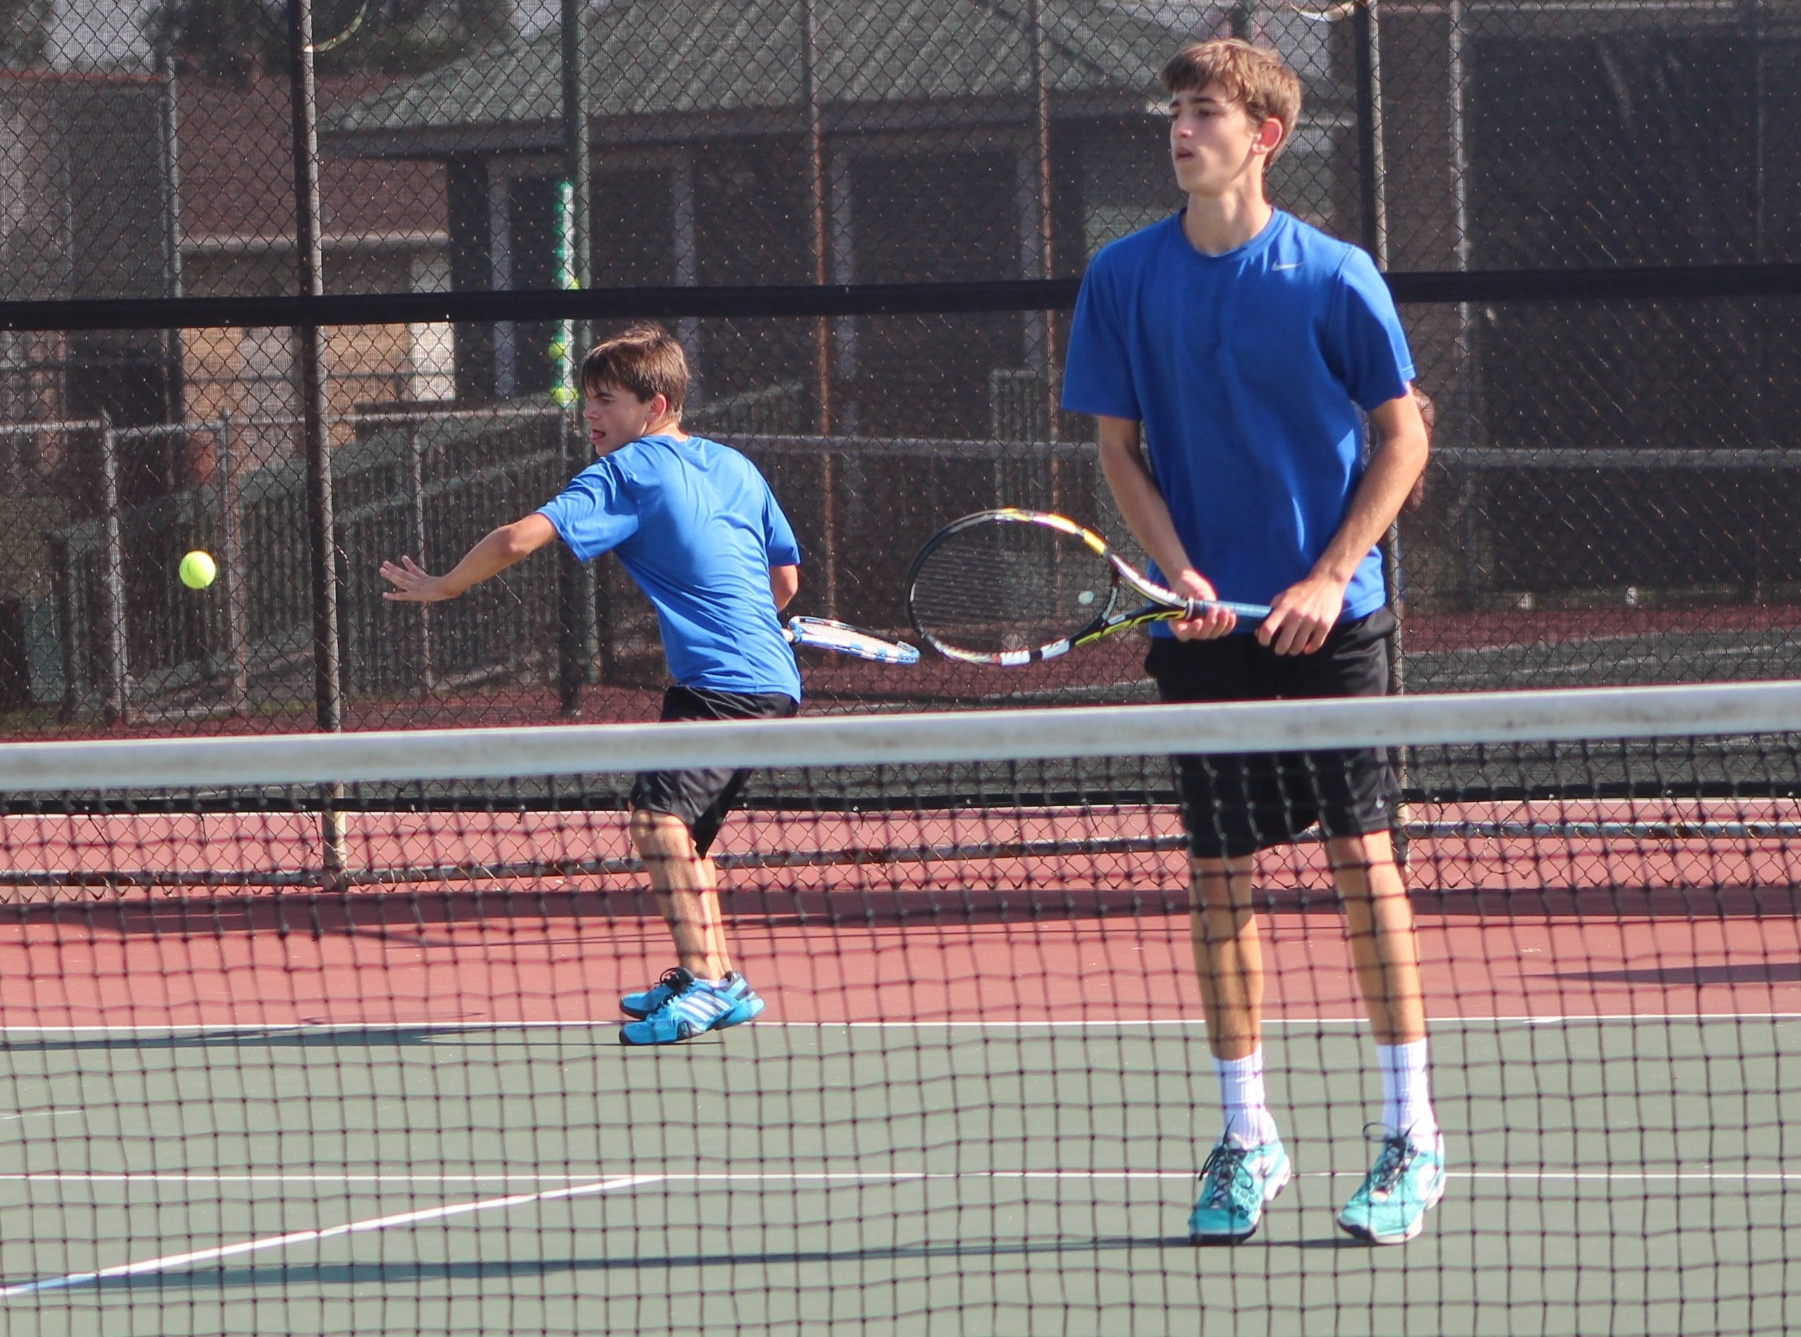 lutcher catholic singles The chs tennis team a defeated lutcher 4-0 on wednesday, february 12 the bears were led by singles victories from peyton stewart and paul lewis and doubles victories from michael paul bienvenu with matthew greene.